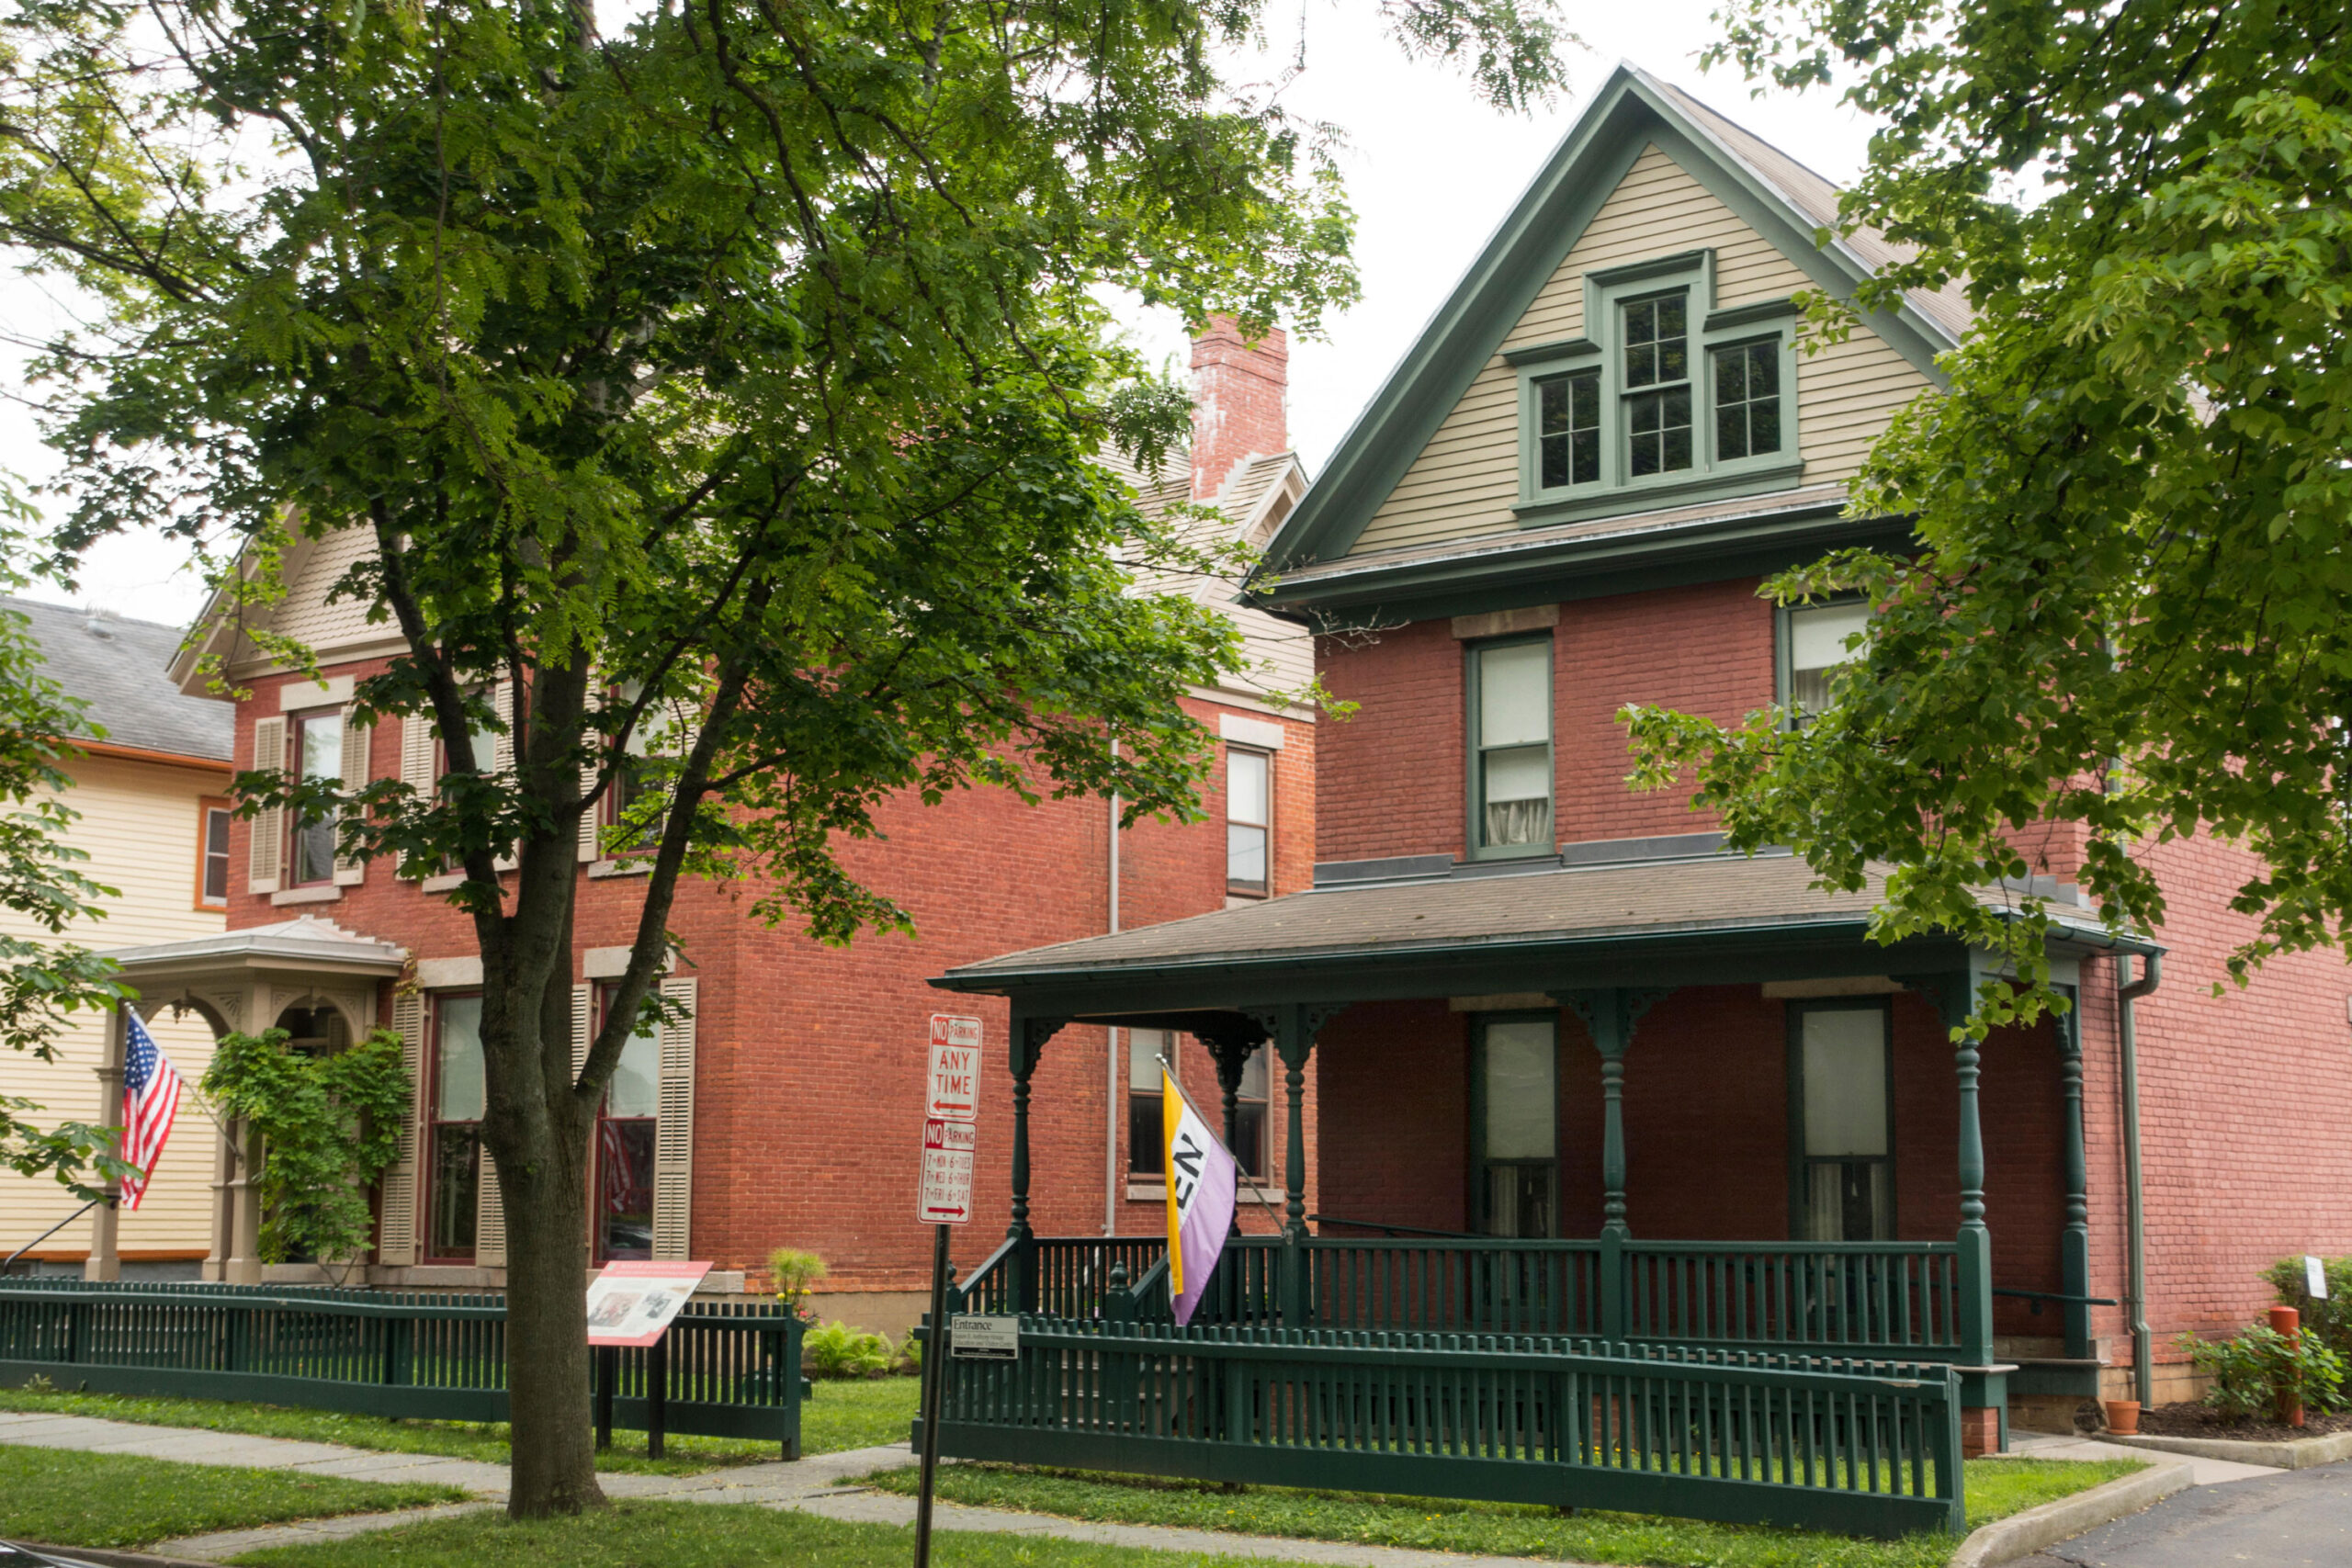 <i>Randy Duchaine/Alamy</i><br/>Susan B. Anthony Museum and House in Rochester